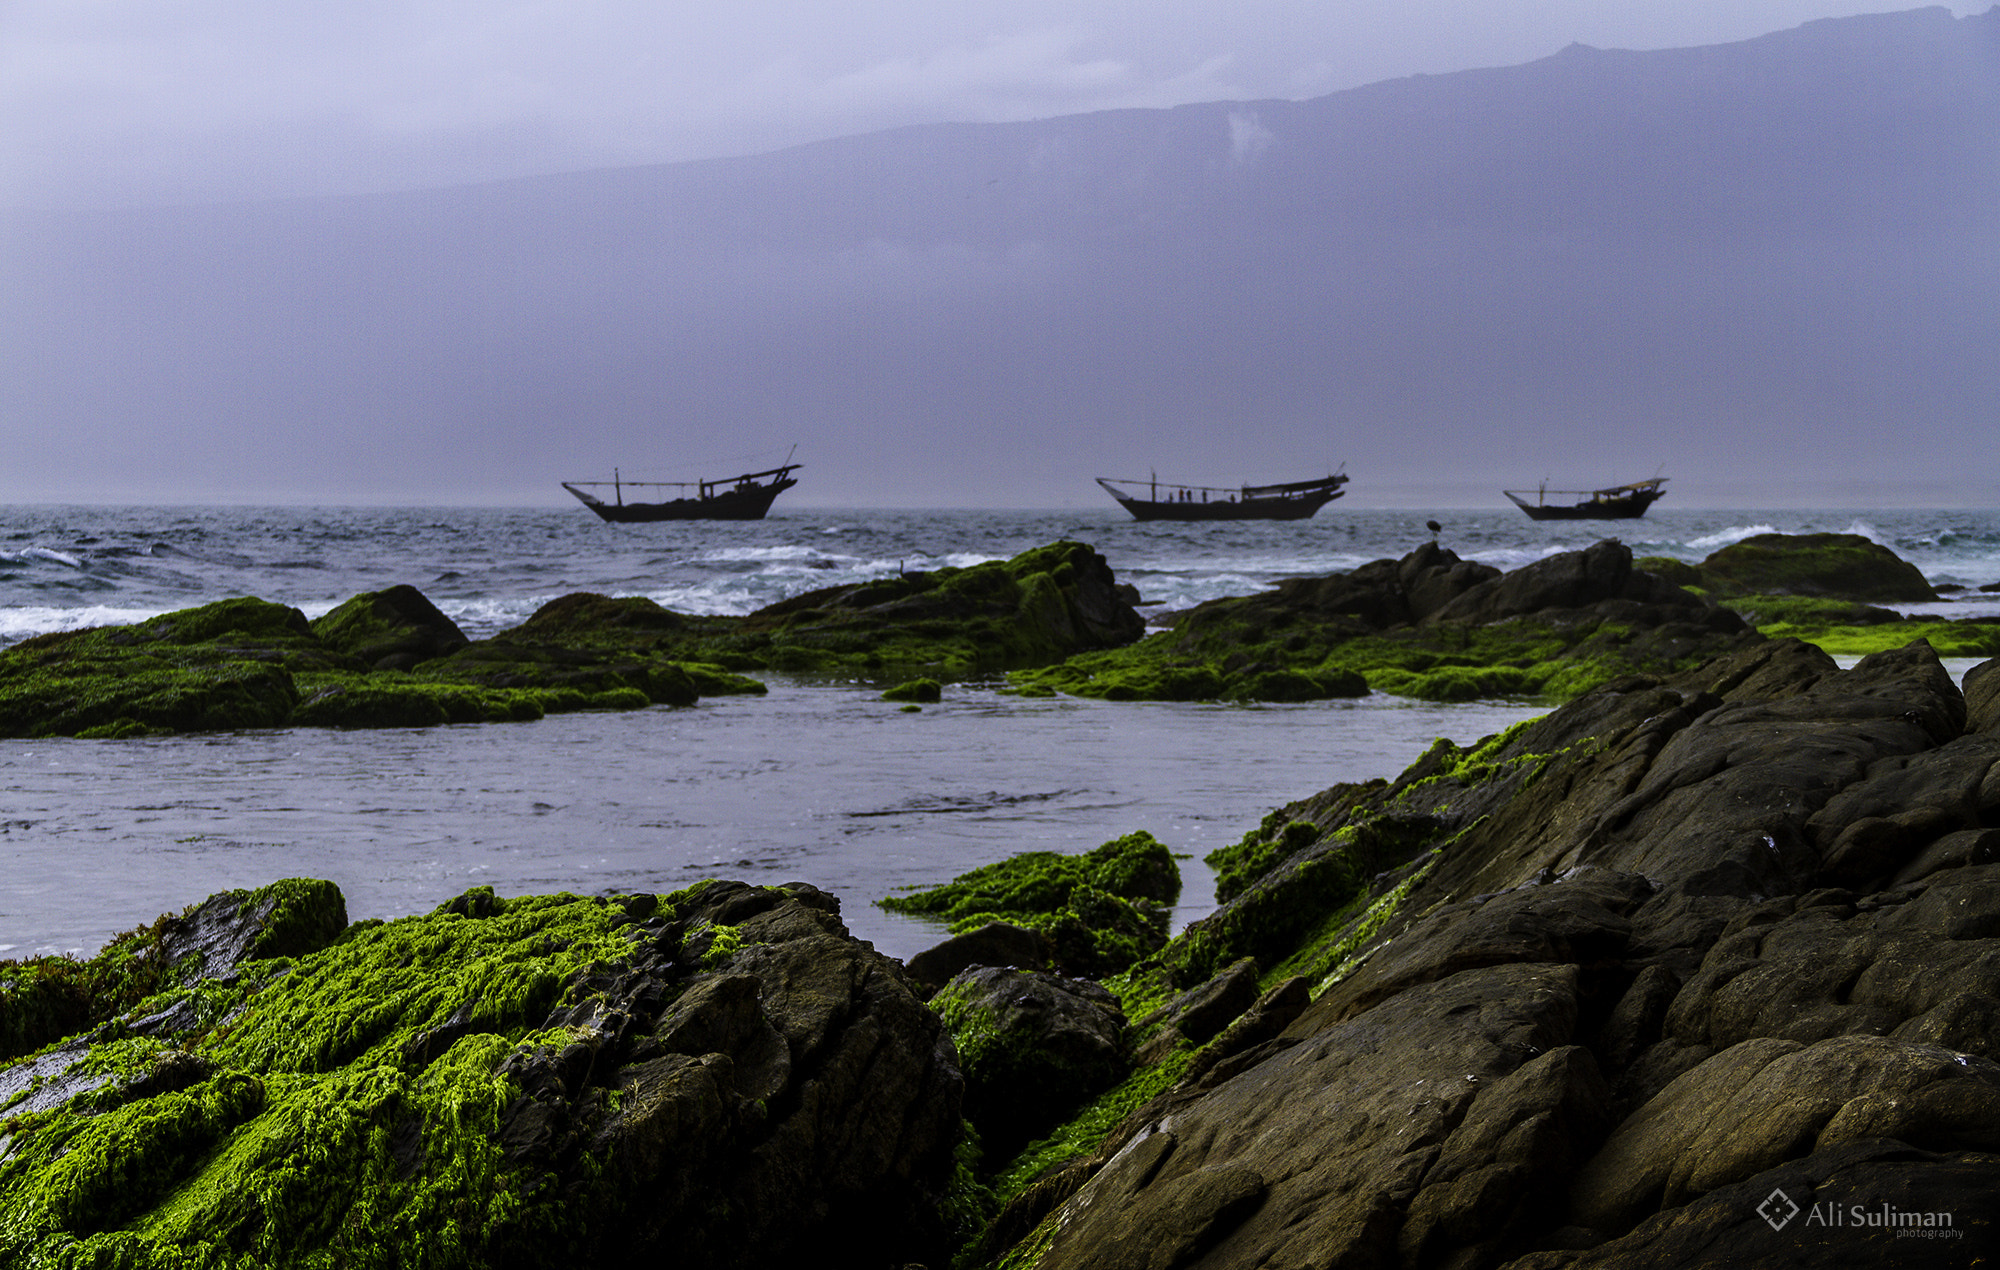 Photograph Salalah by Ali Suliman on 500px